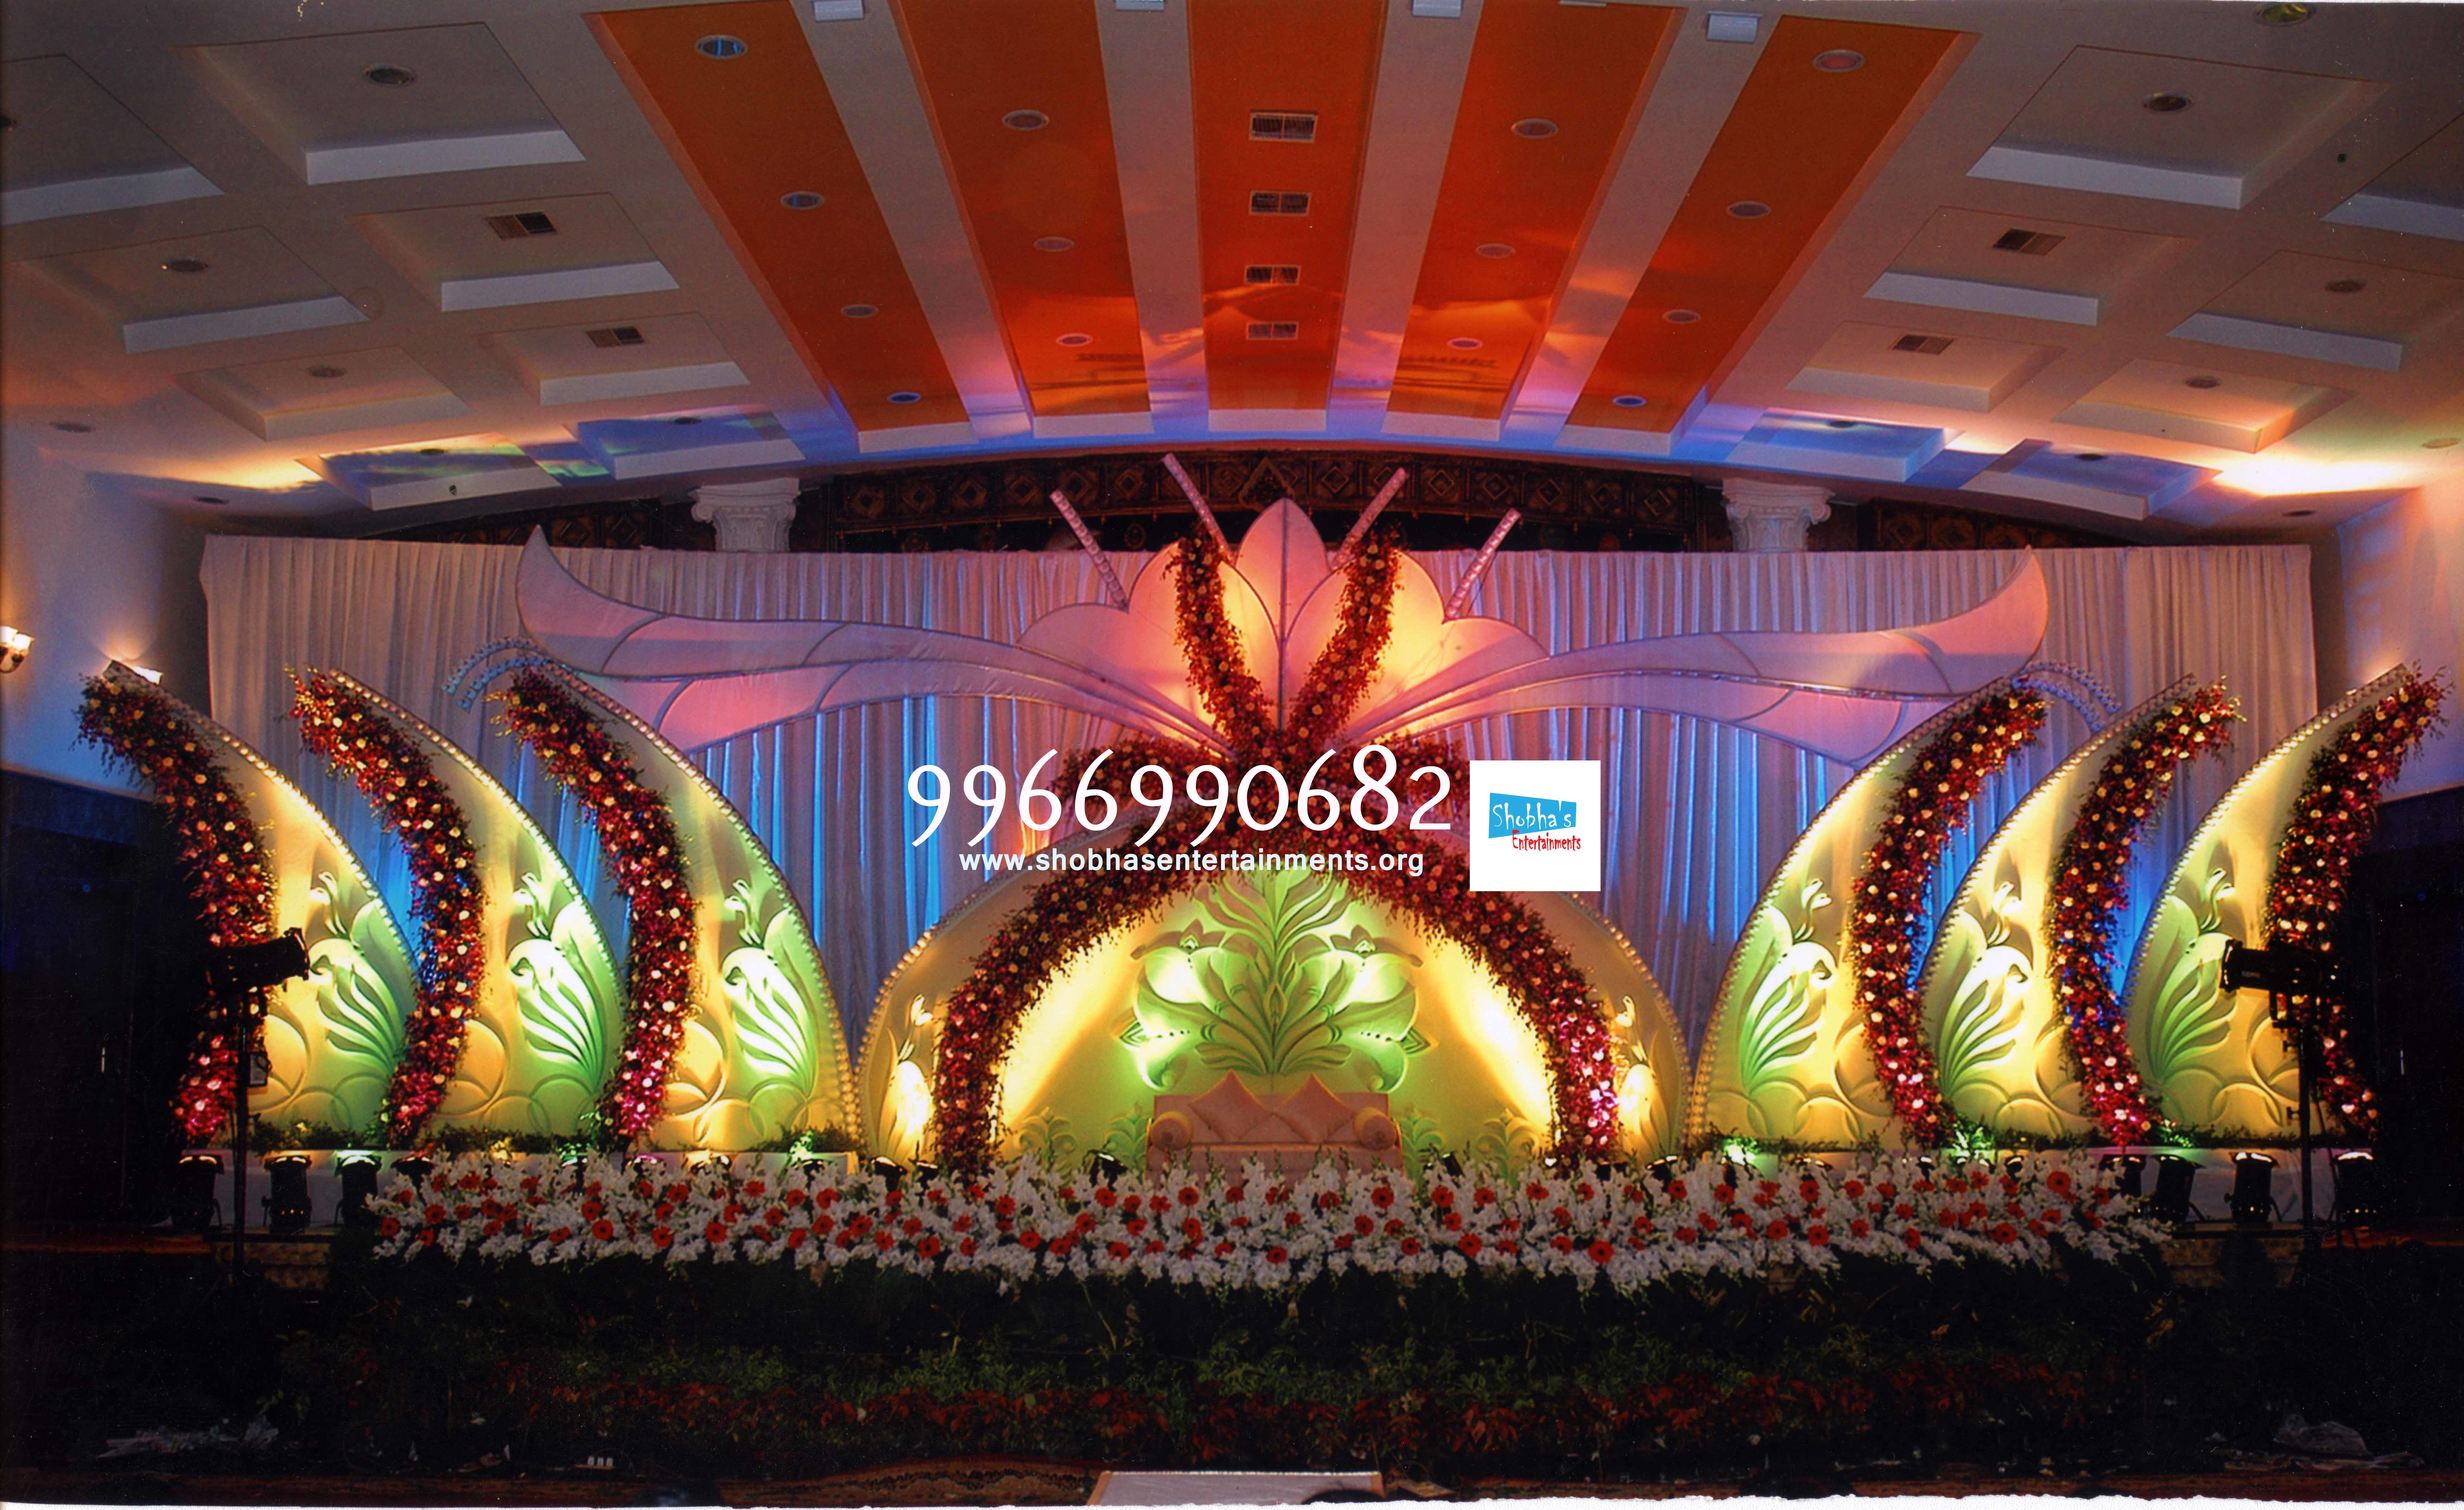 Stage decorations for school functions images for Annual day stage decoration images